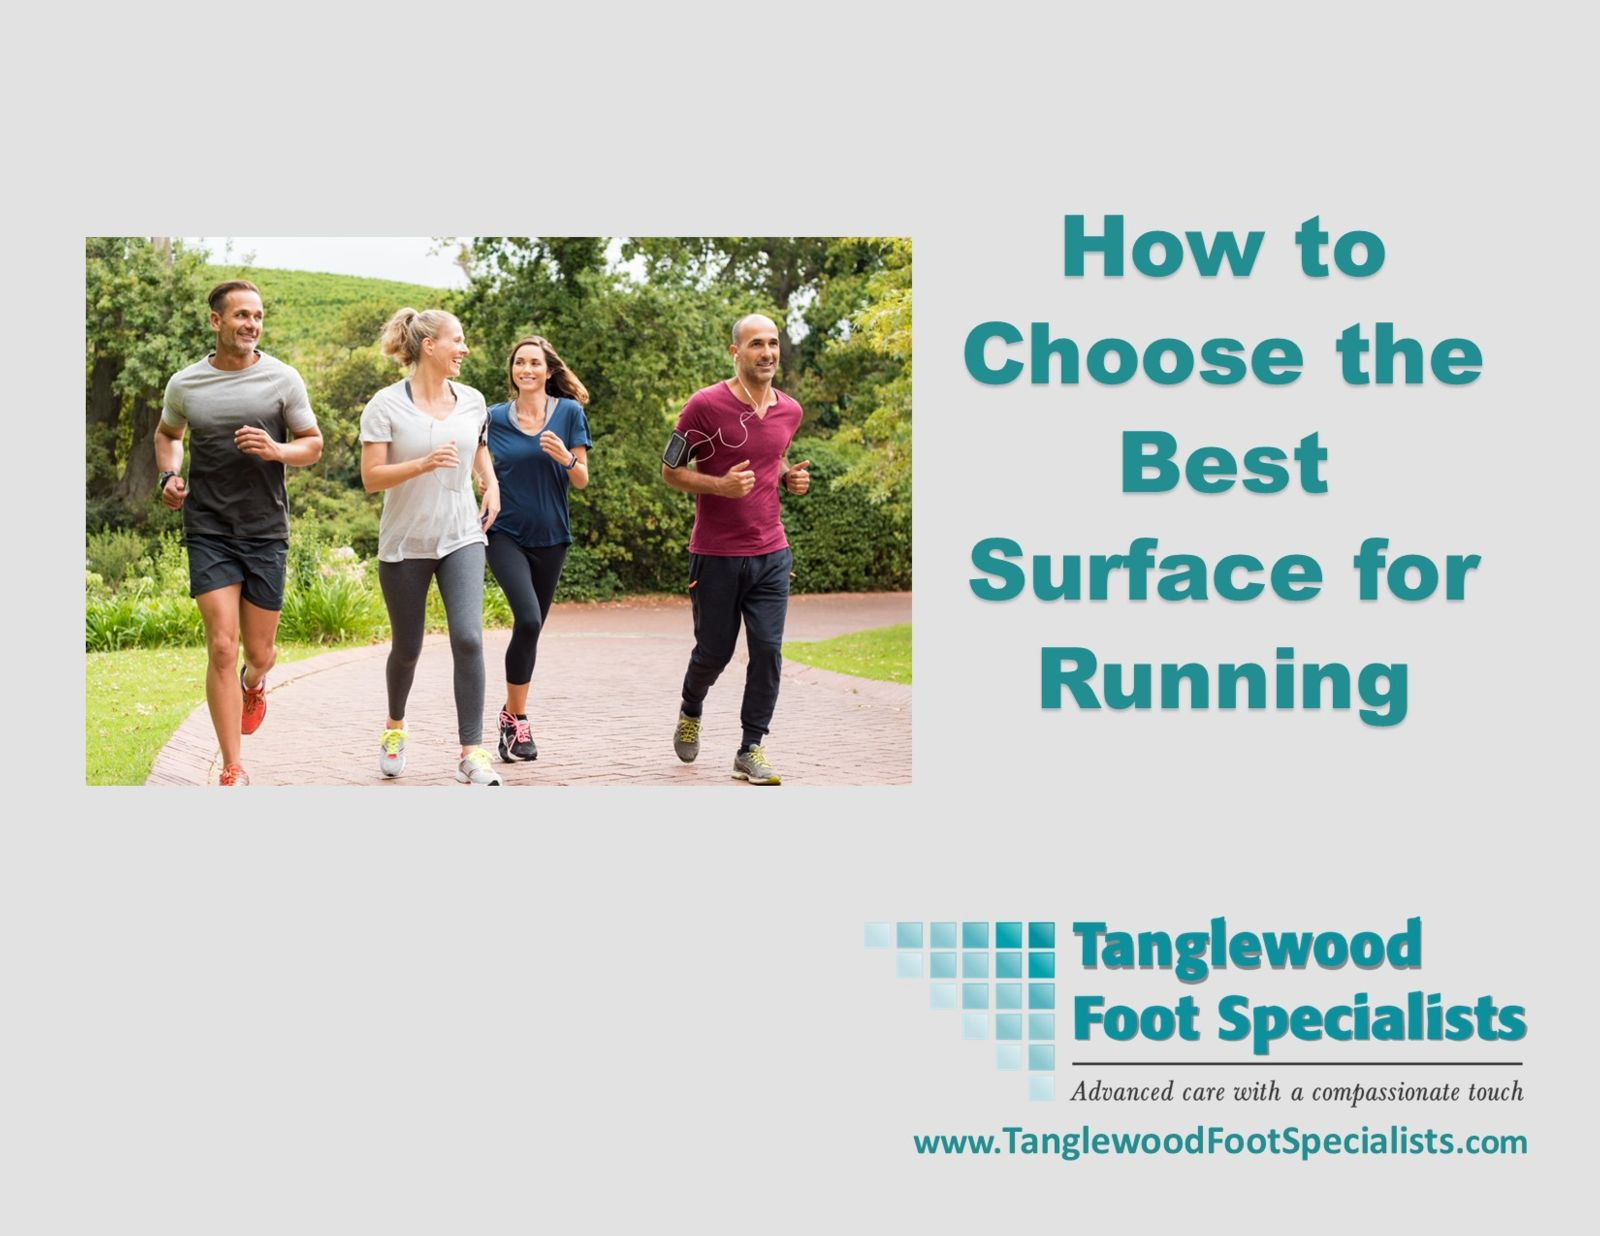 Houston podiatrist discusses what the best running surface is